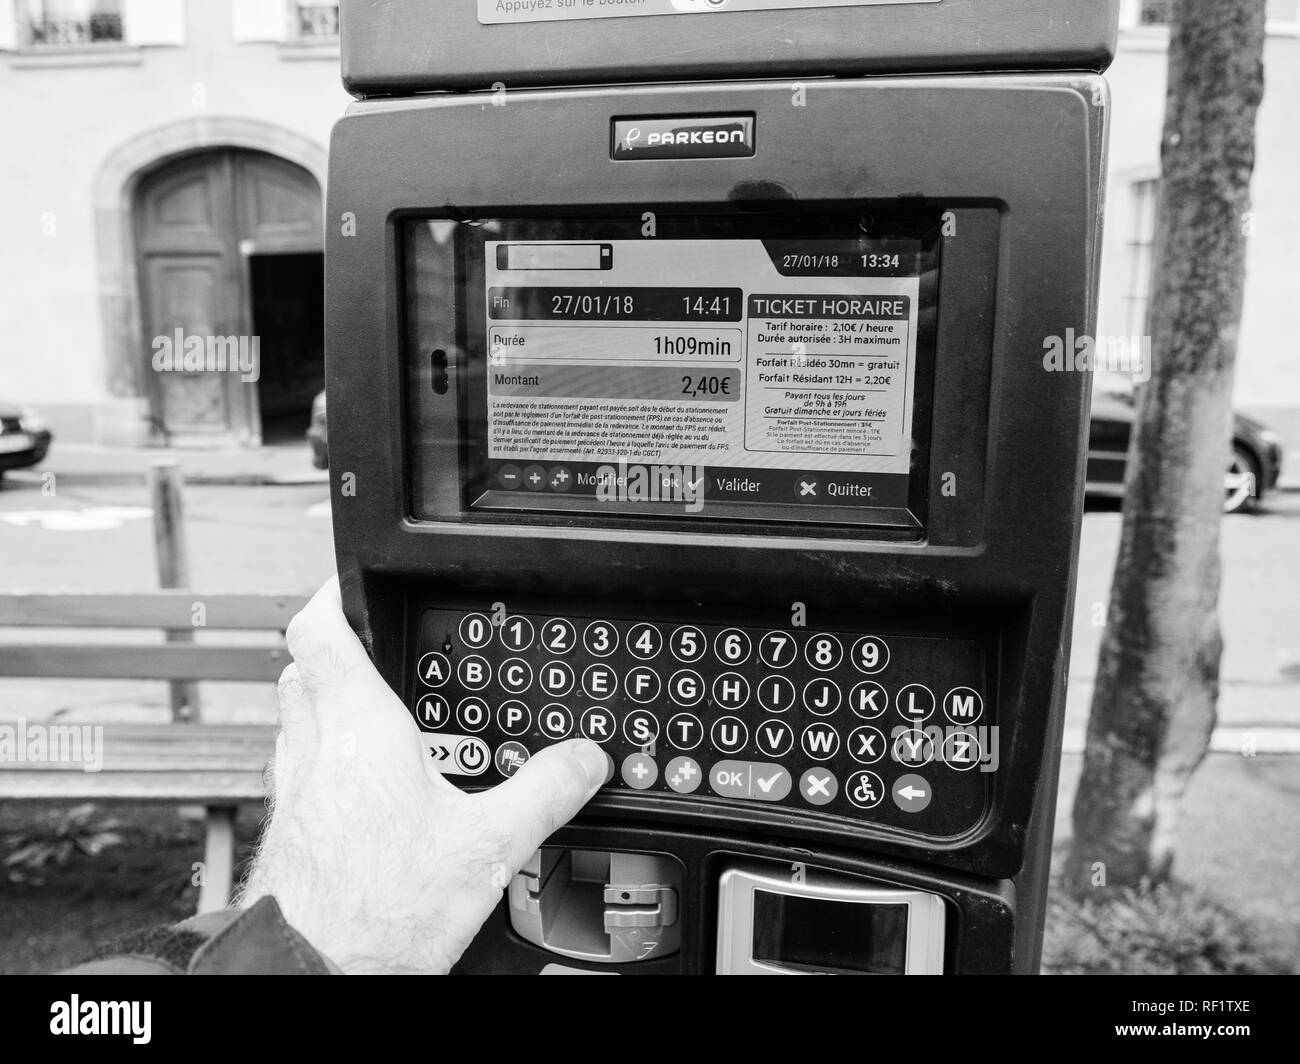 STRASBOURG, FRANCE - JAN 27, 2018: Man hand operating digital electronic park metere in French city of Strasbourg, setting time on the digital touchscreen - Stock Image